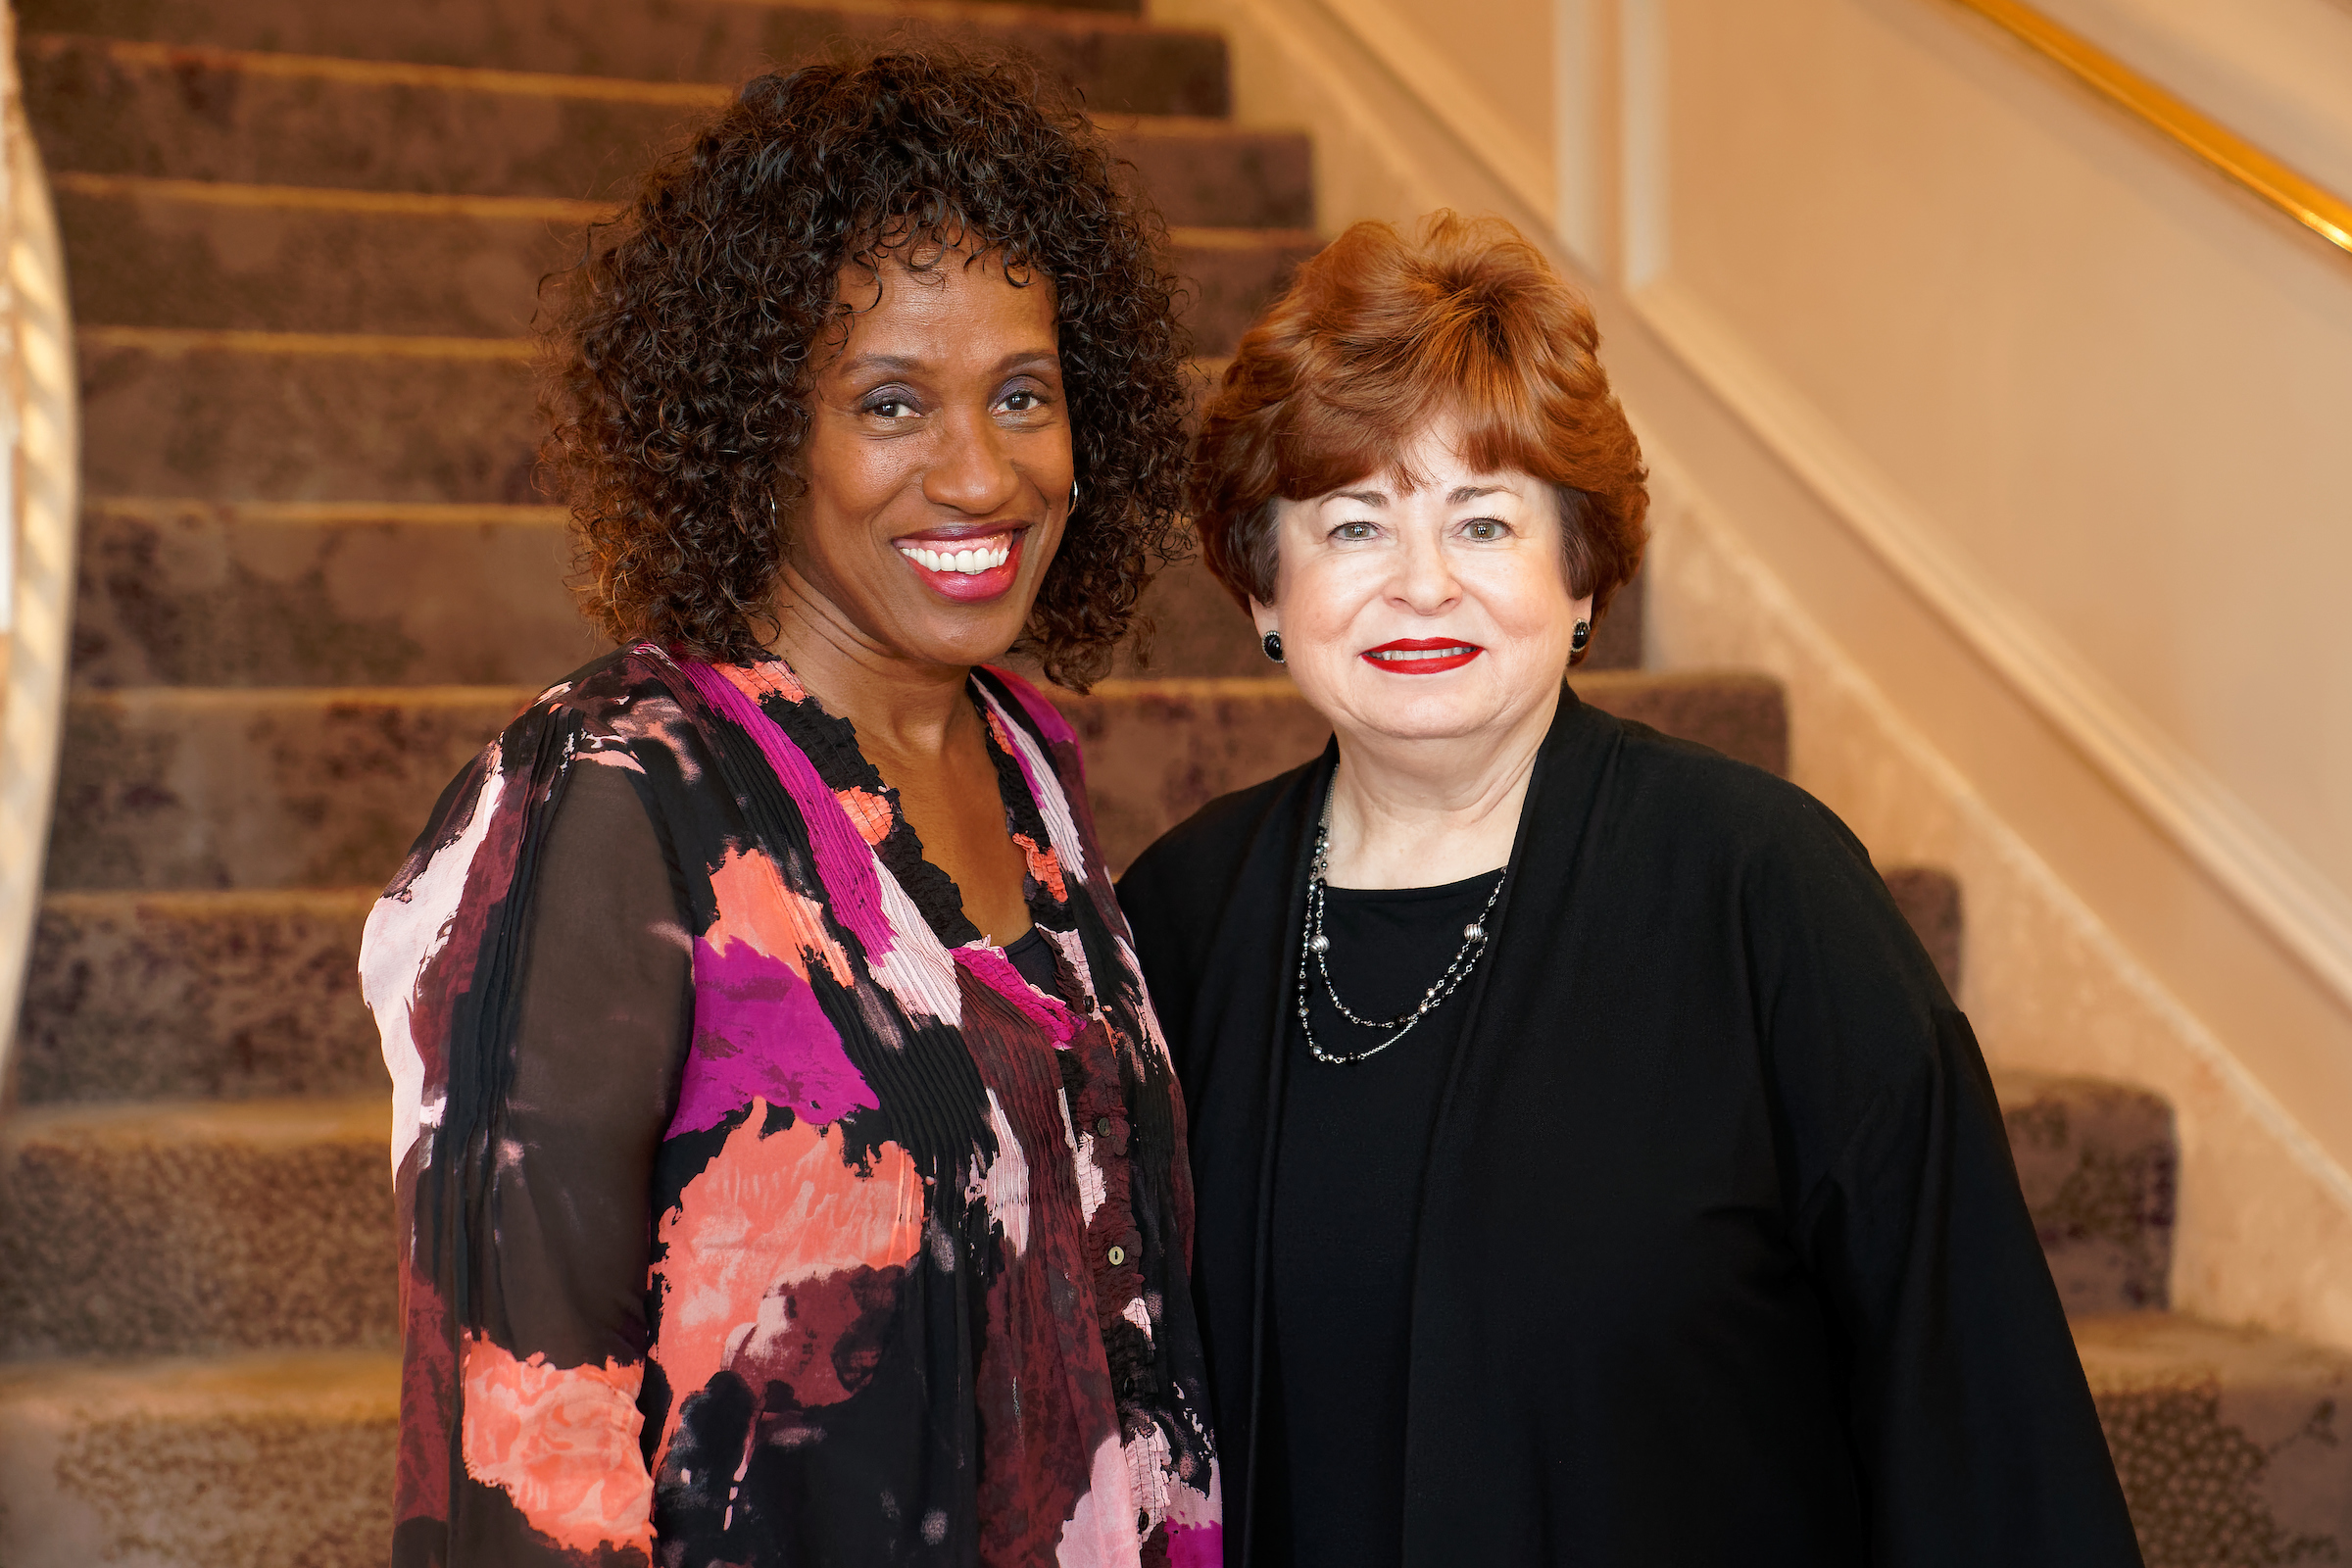 Jackie Joyner-Kersee served as keynote speaker, with Maxine Clark as our 2018 Making a Difference honoree.